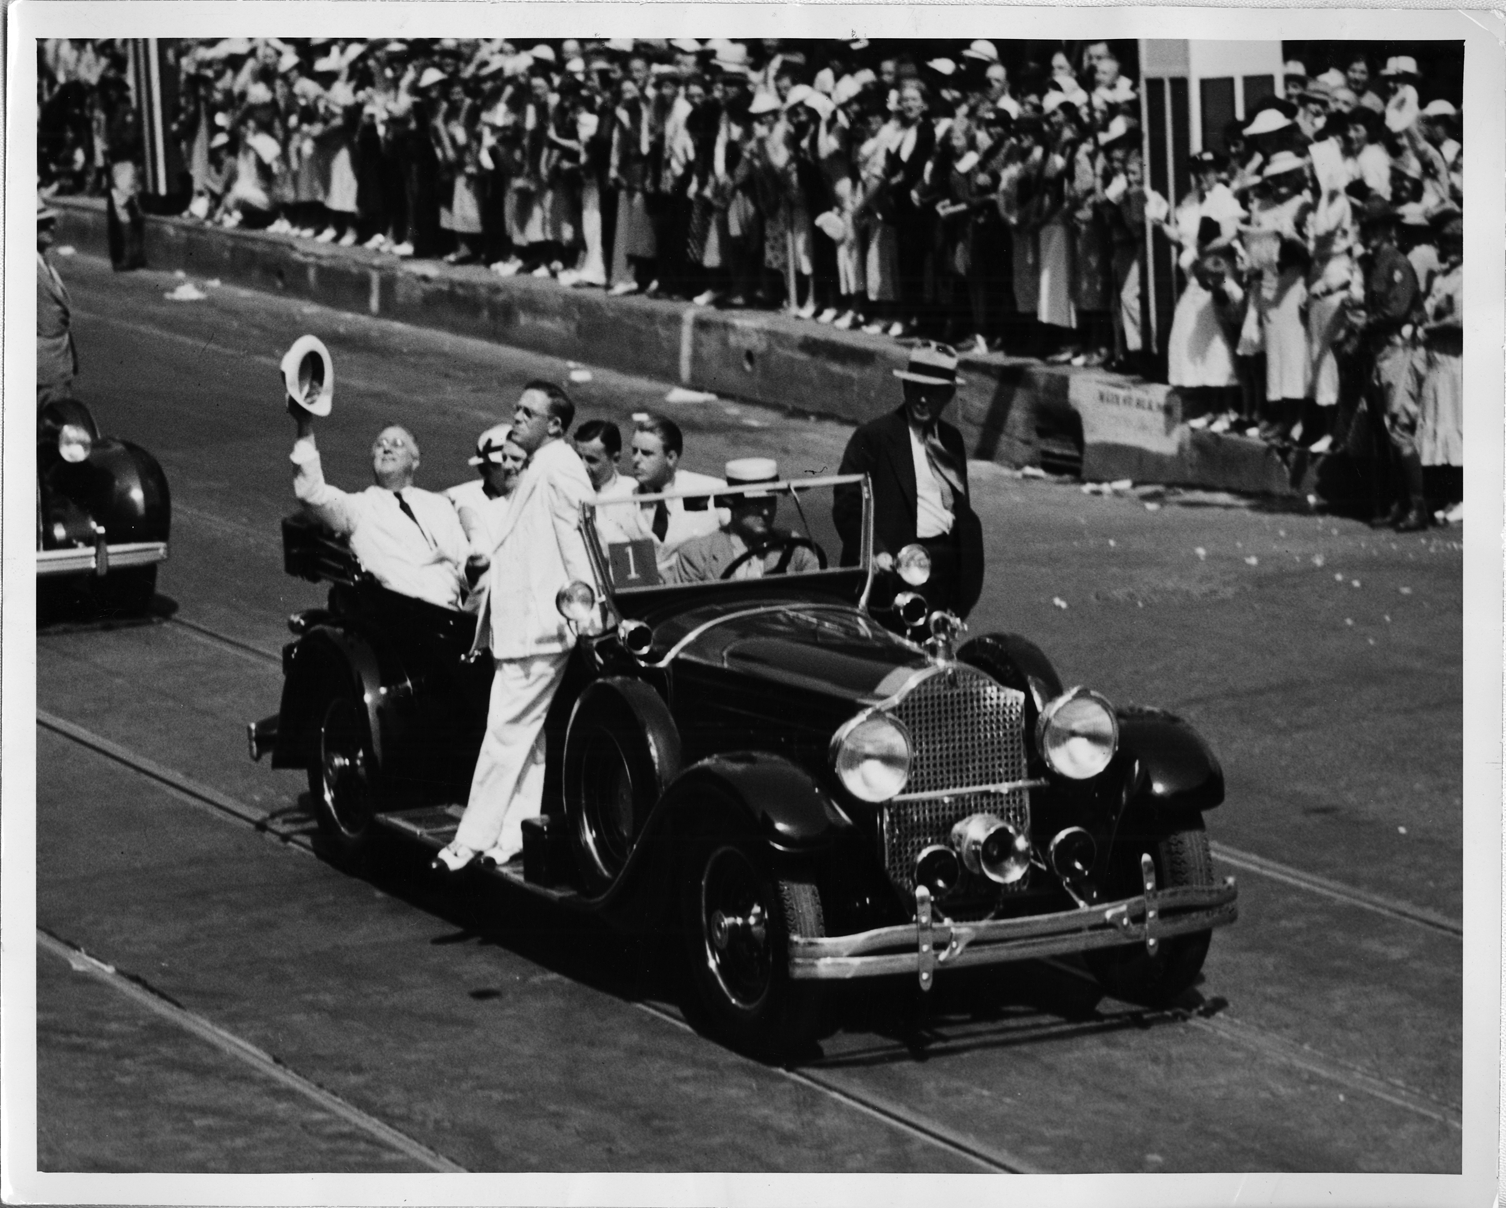 1928 Packard carrying President Roosevelt during a parade in Dallas, Texas  | DPL DAMS